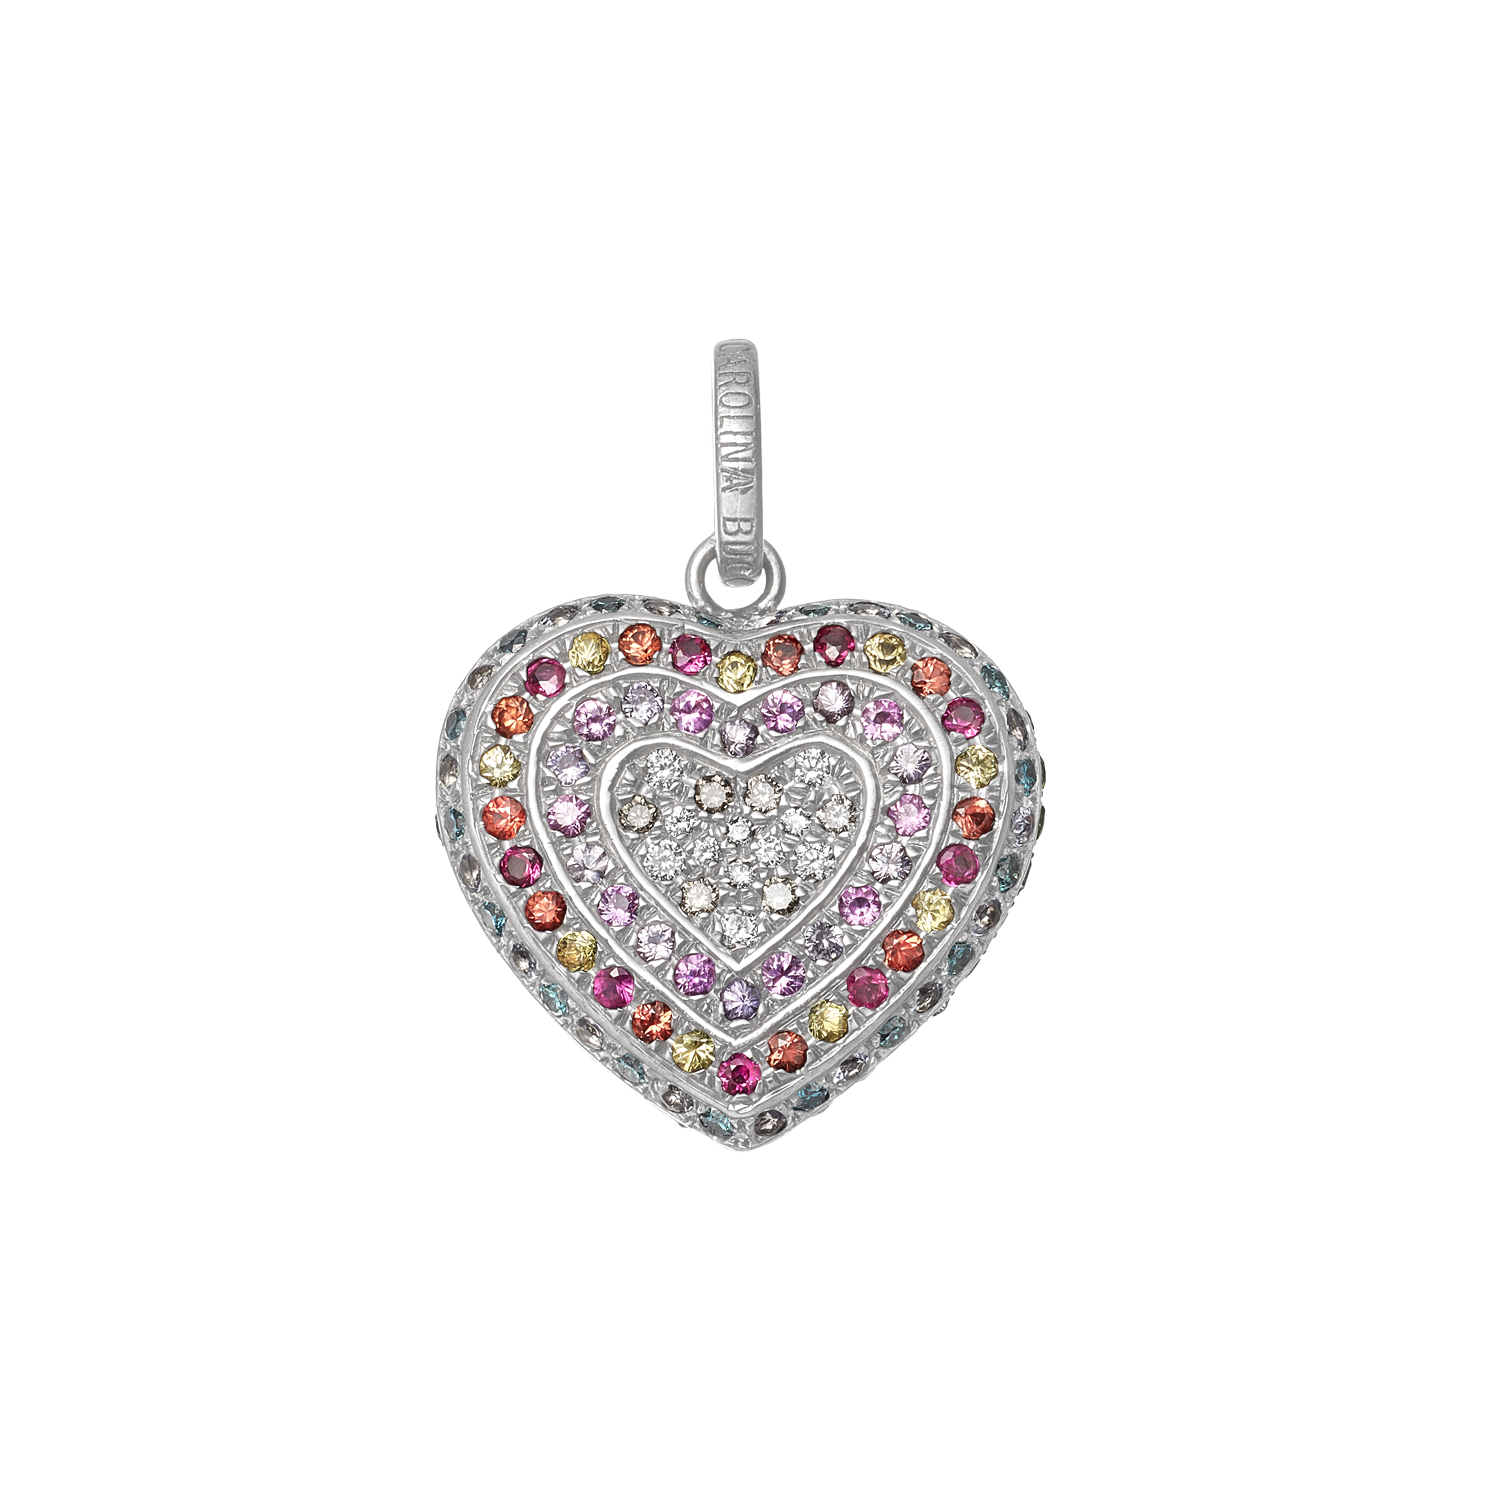 Rainbow Pavé Small Cuore Pendant in White Gold